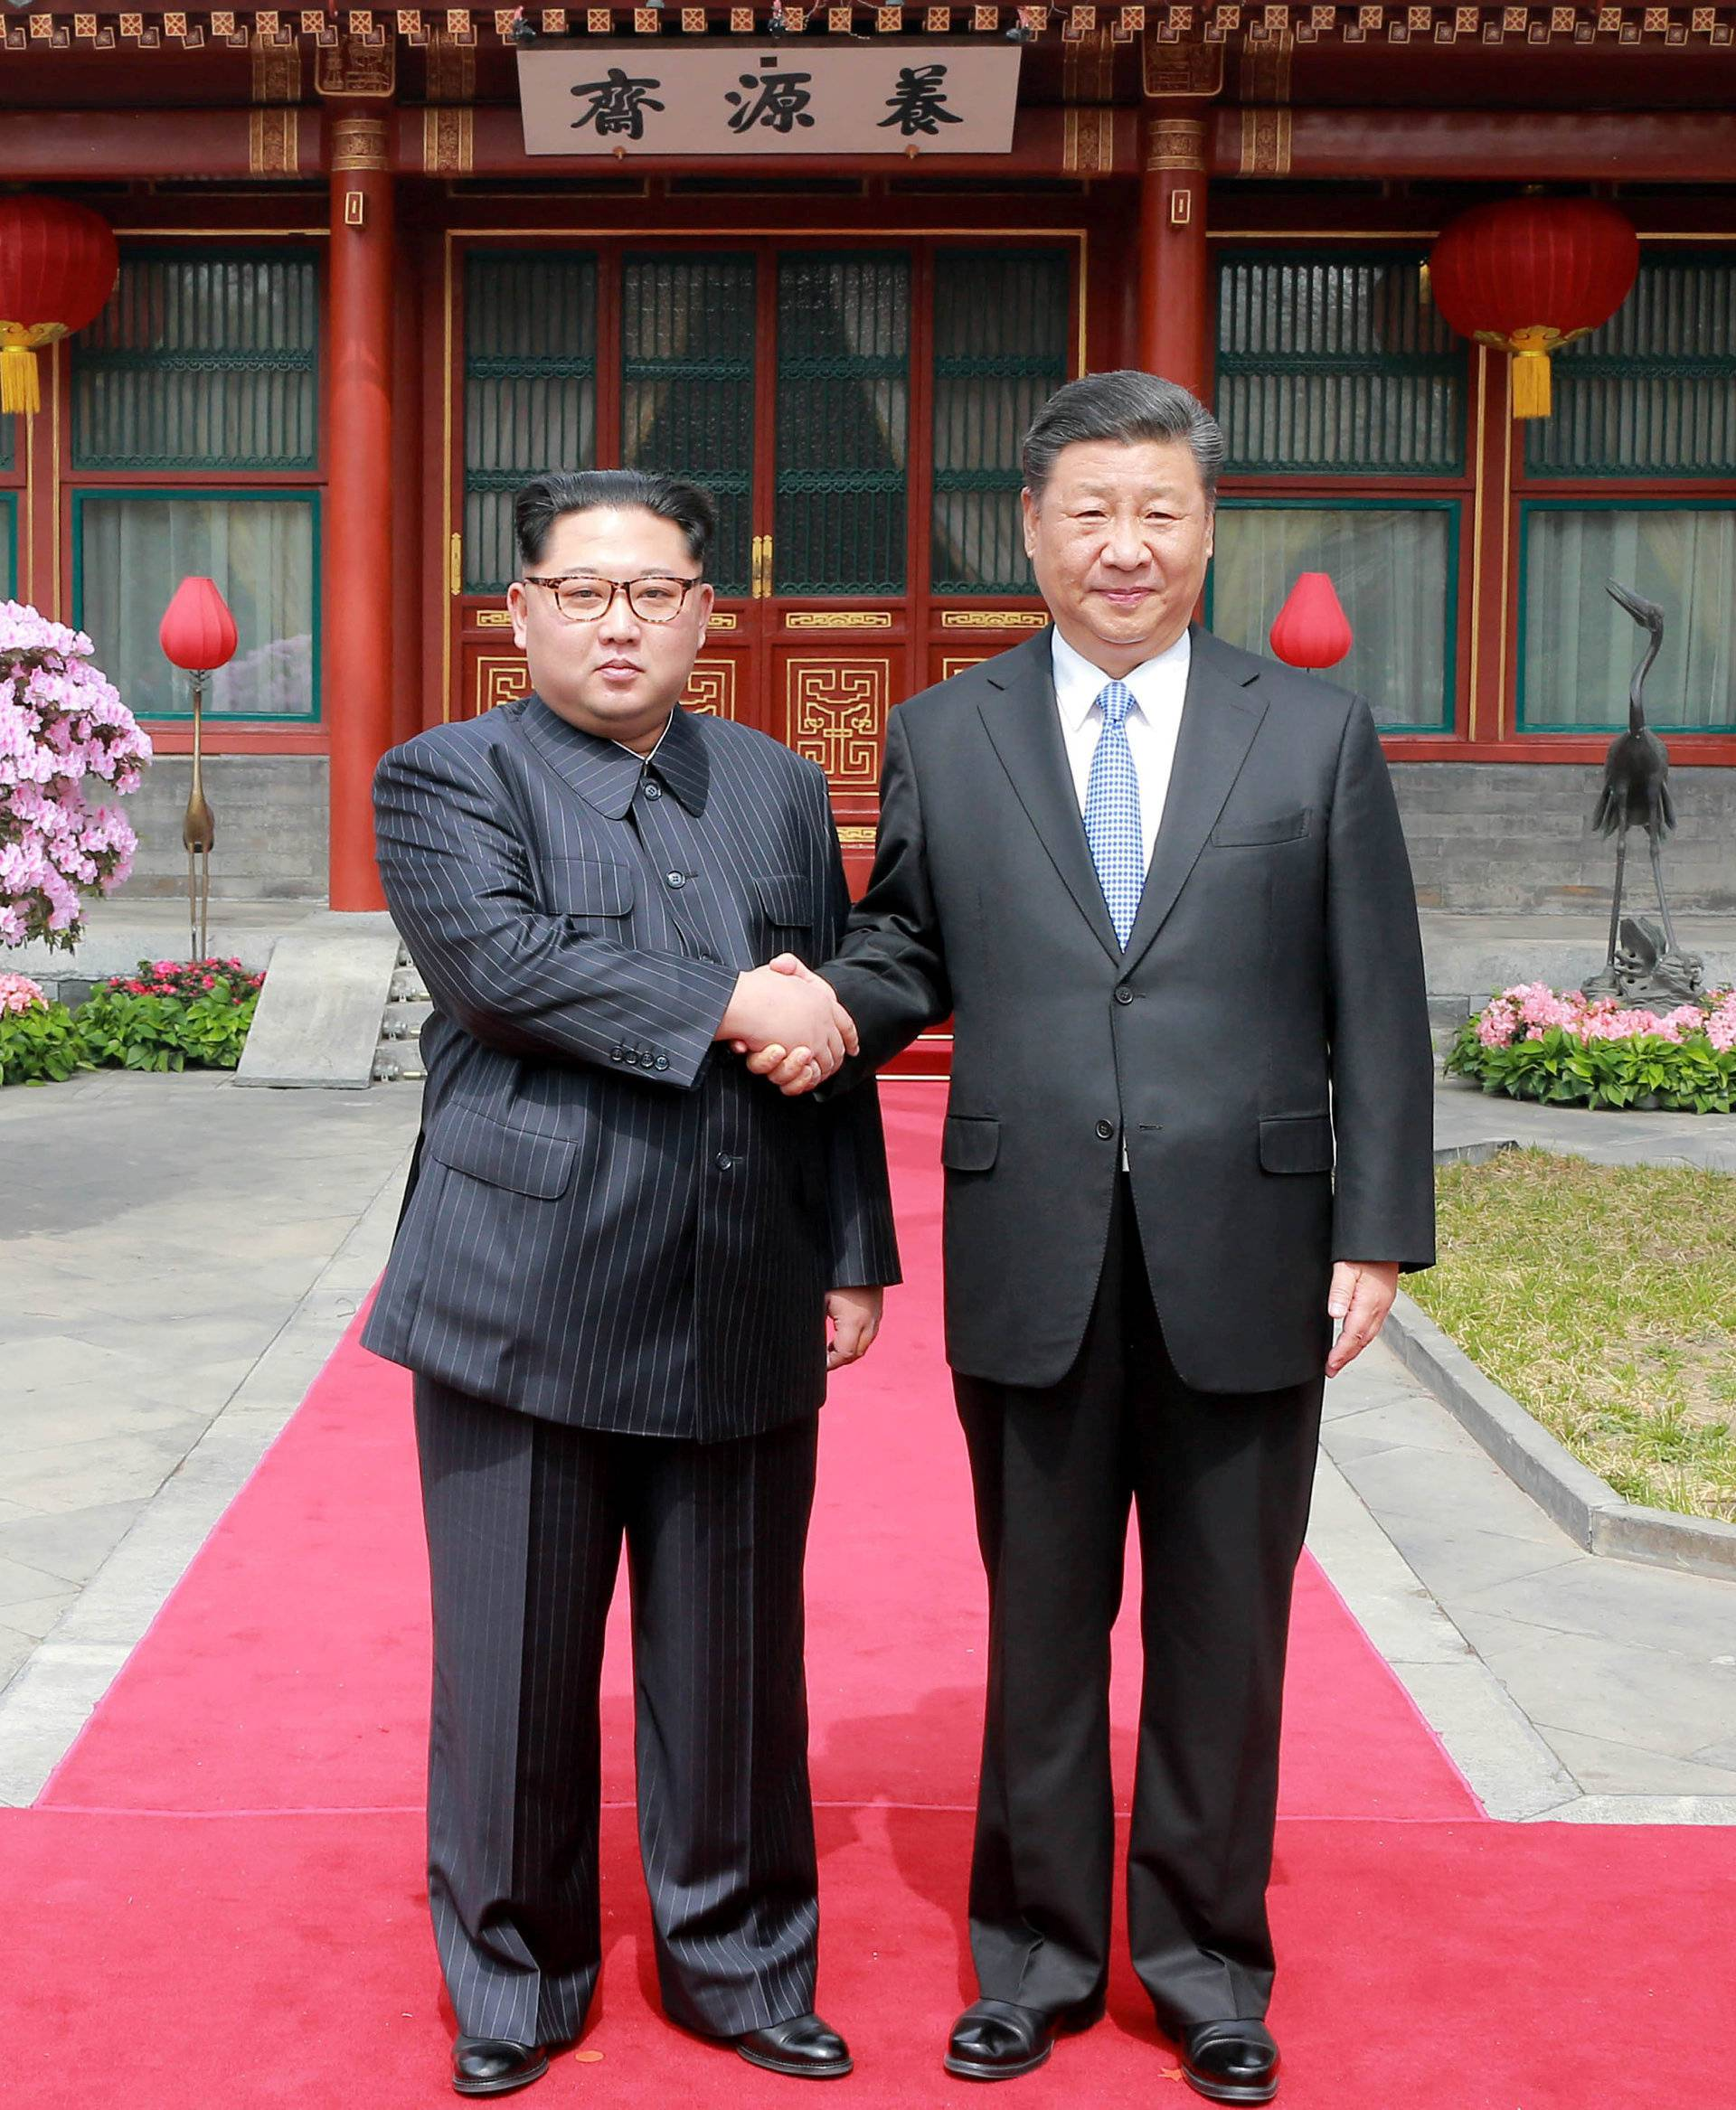 North Korean leader Kim Jong Un shakes hands with Chinese President Xi Jinping